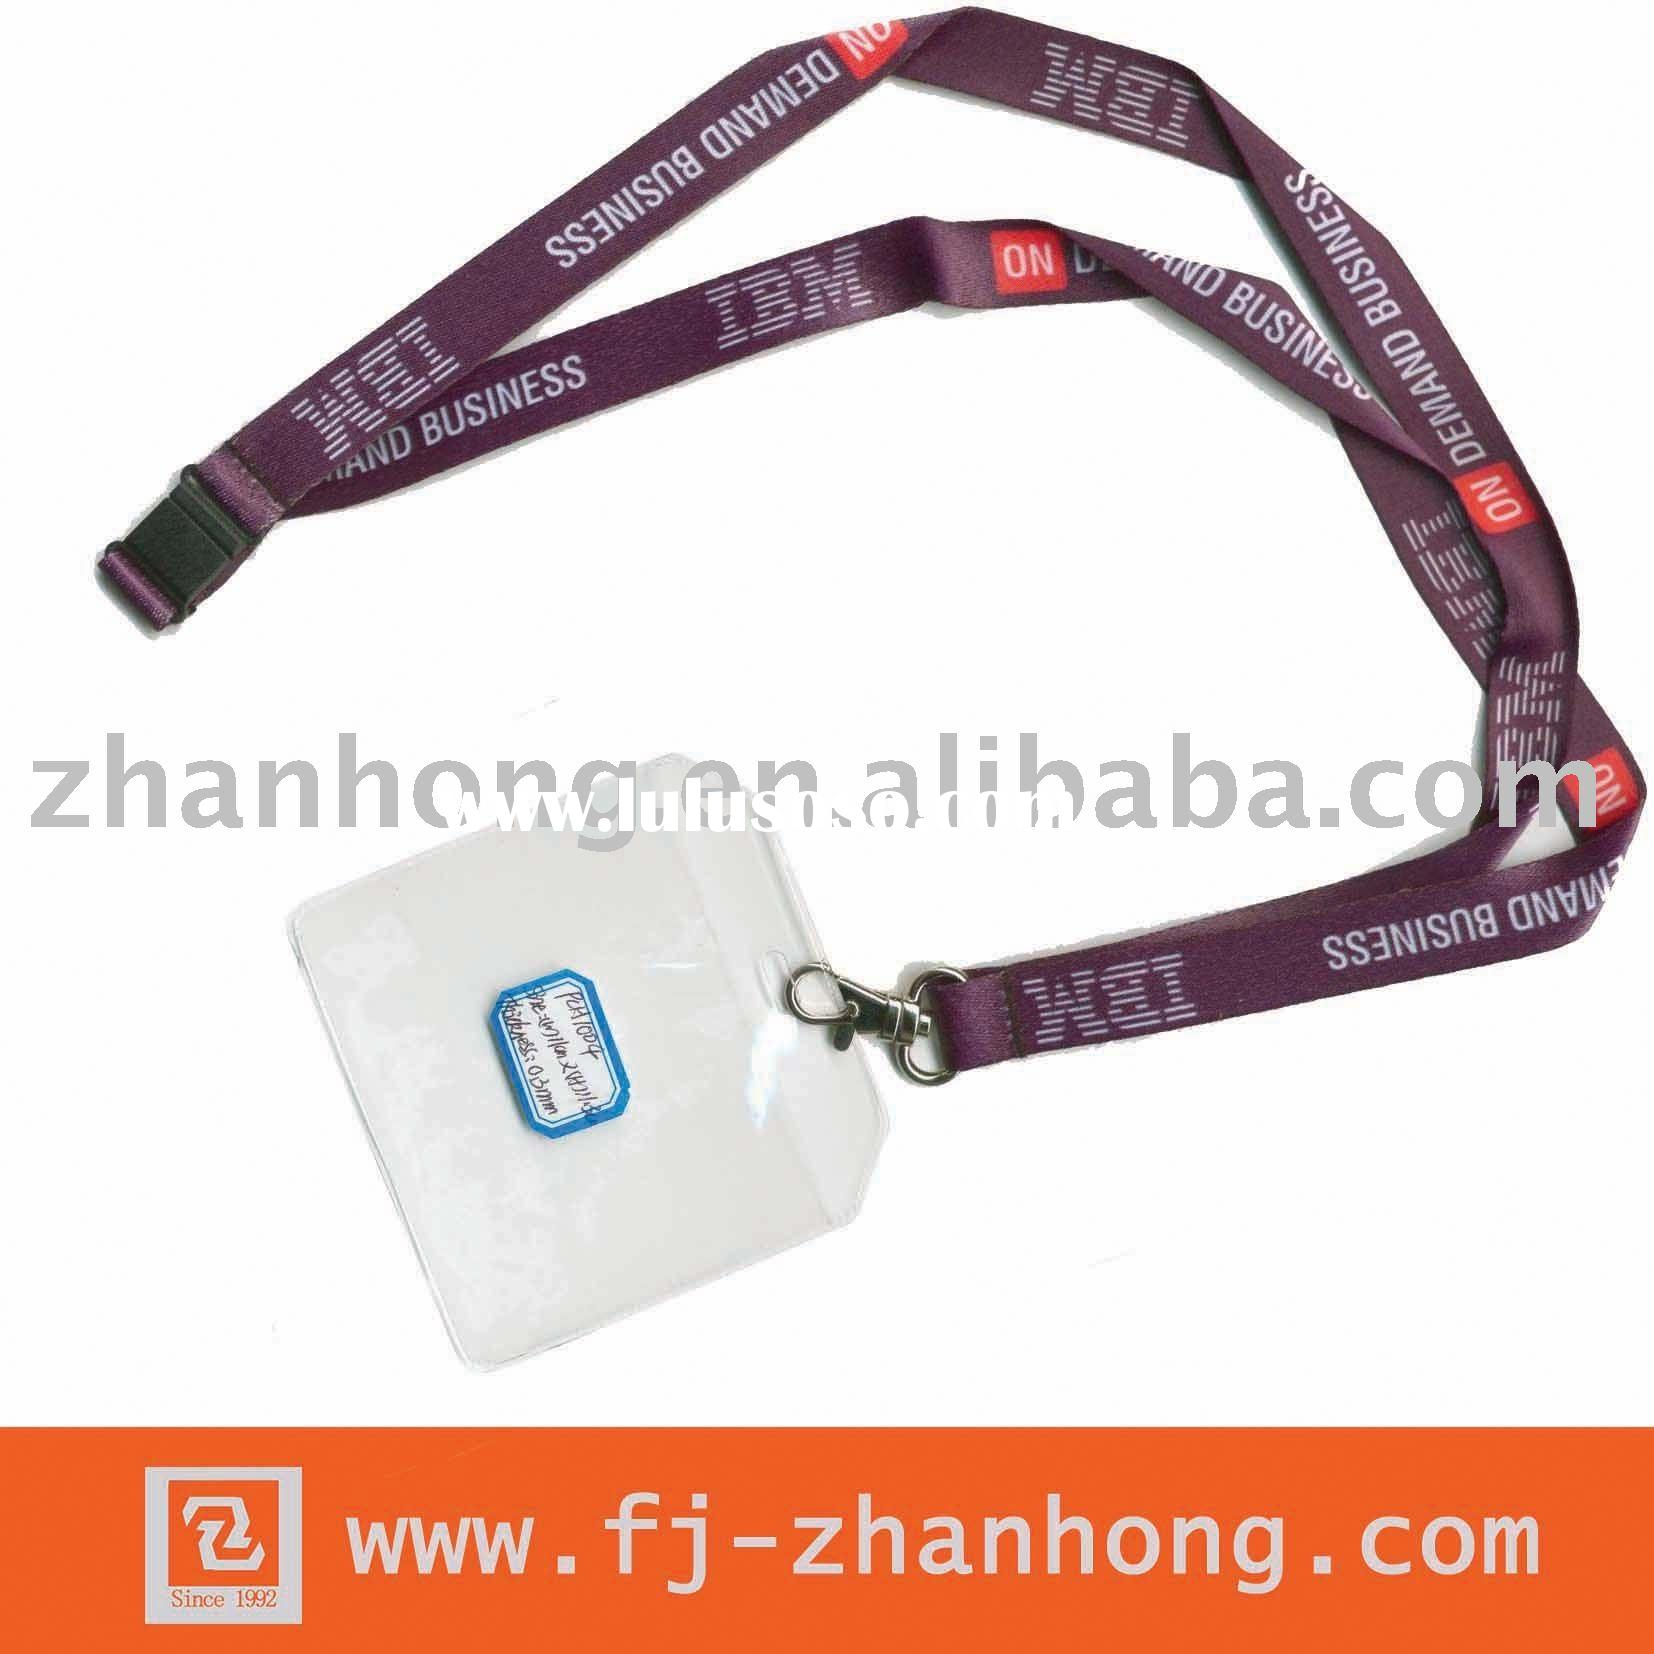 silk screen polyester lanyard with id badge holder CHL004